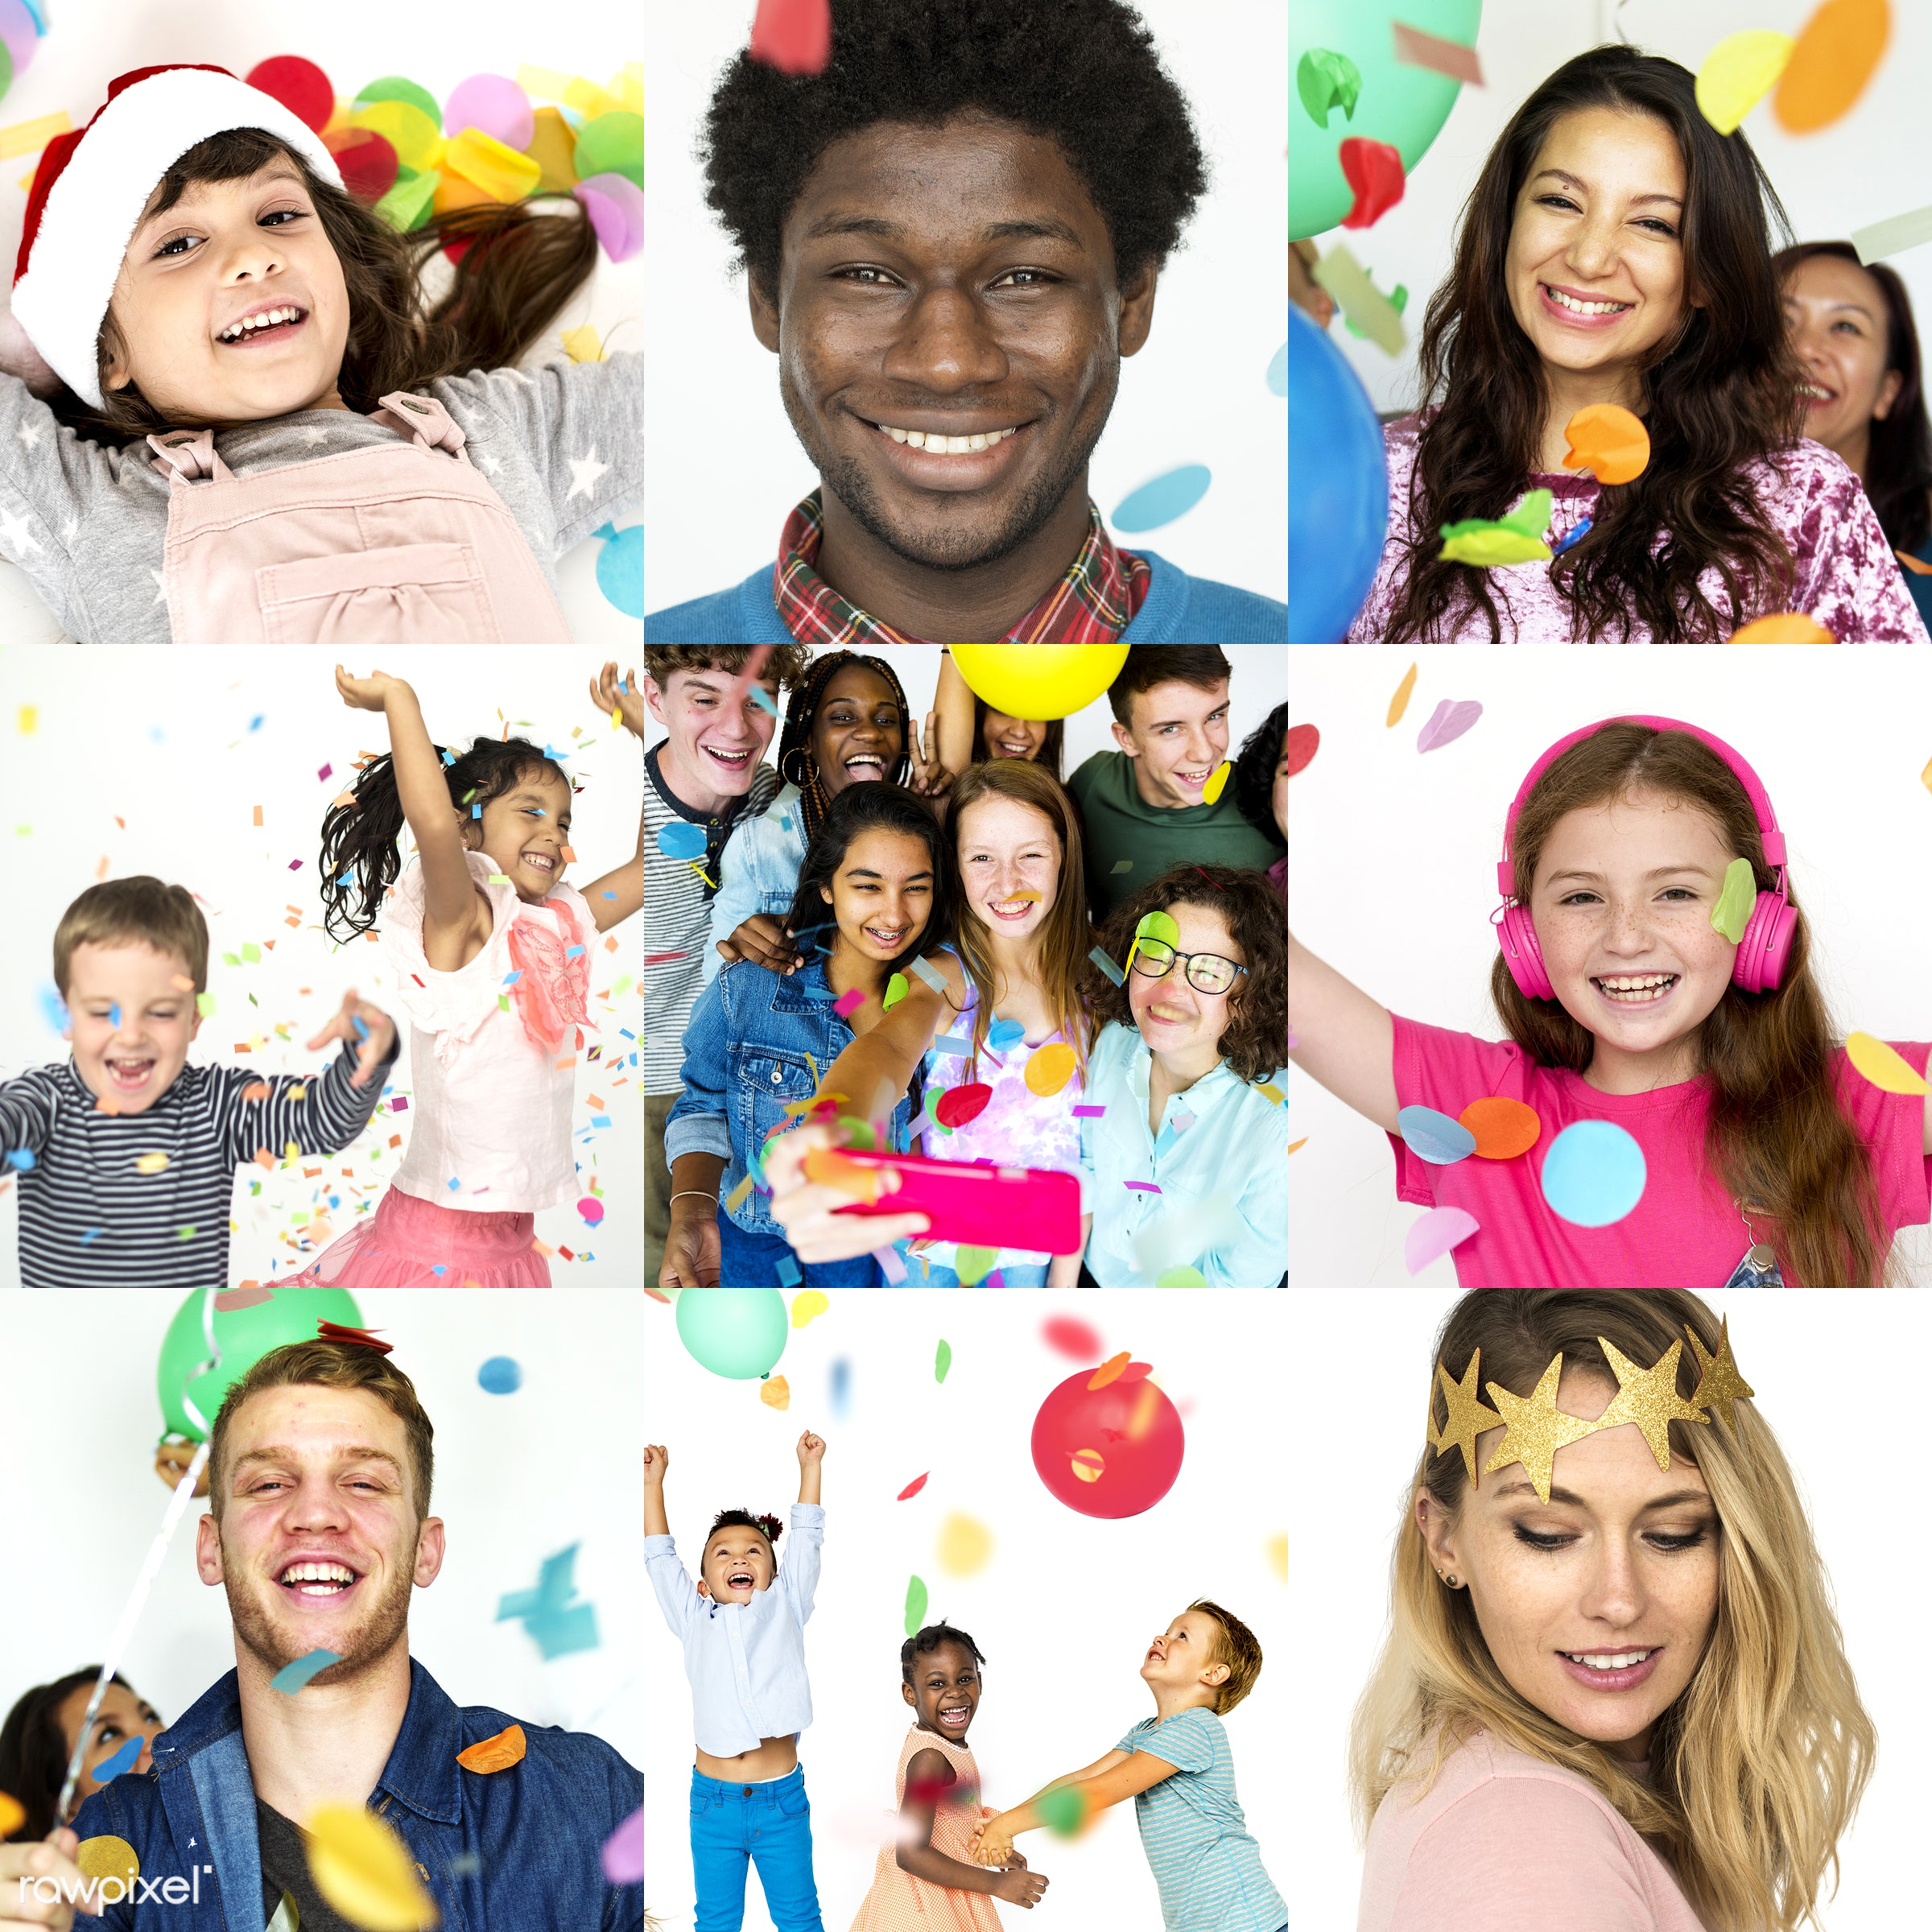 diverse, party, people, caucasian, asian, event, woman, lifestyle, gathering, cheerful, smiling, confetti, african descent,...